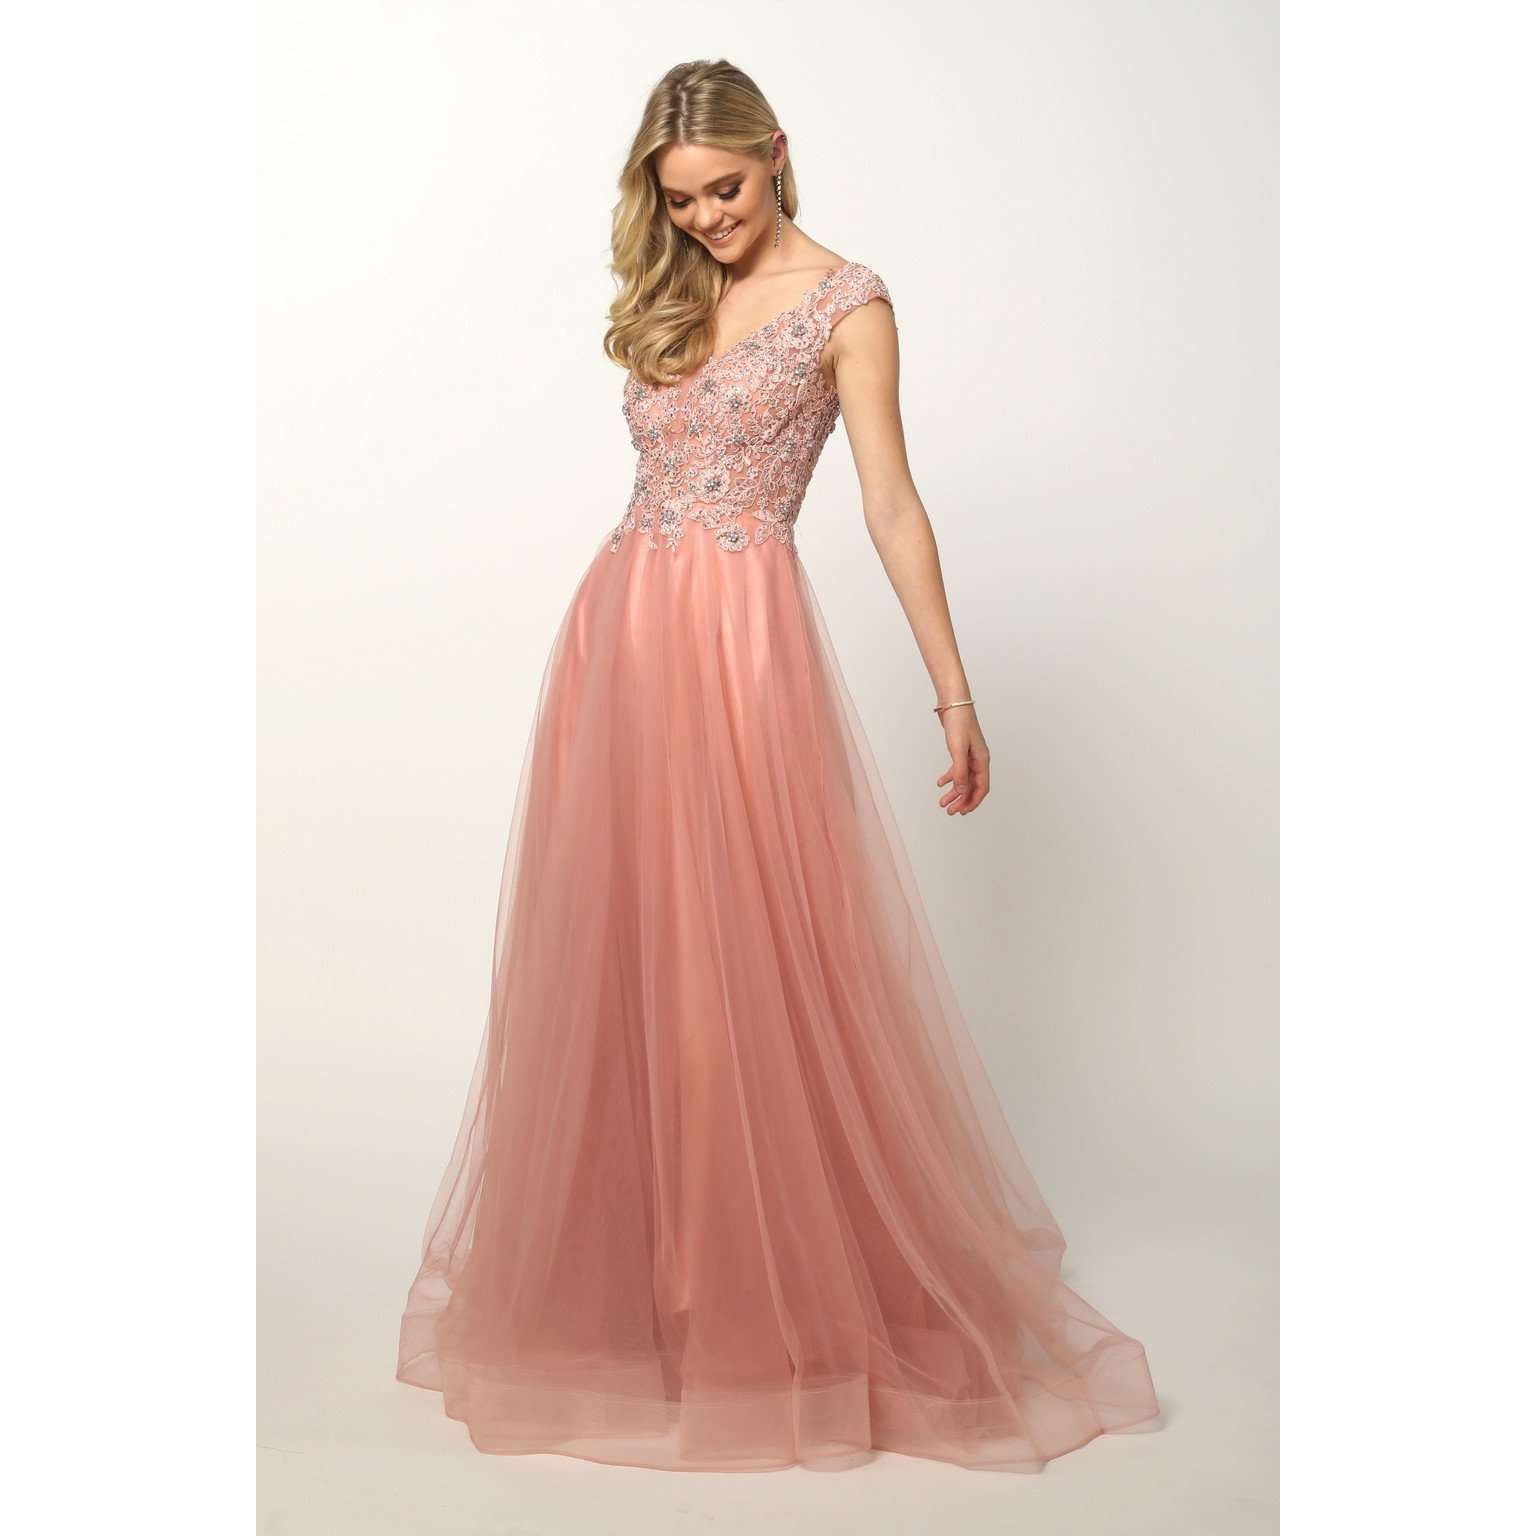 Plunging Neck Embroidery Beaded Illusion Prom Ballgown  684 - Julietdresses